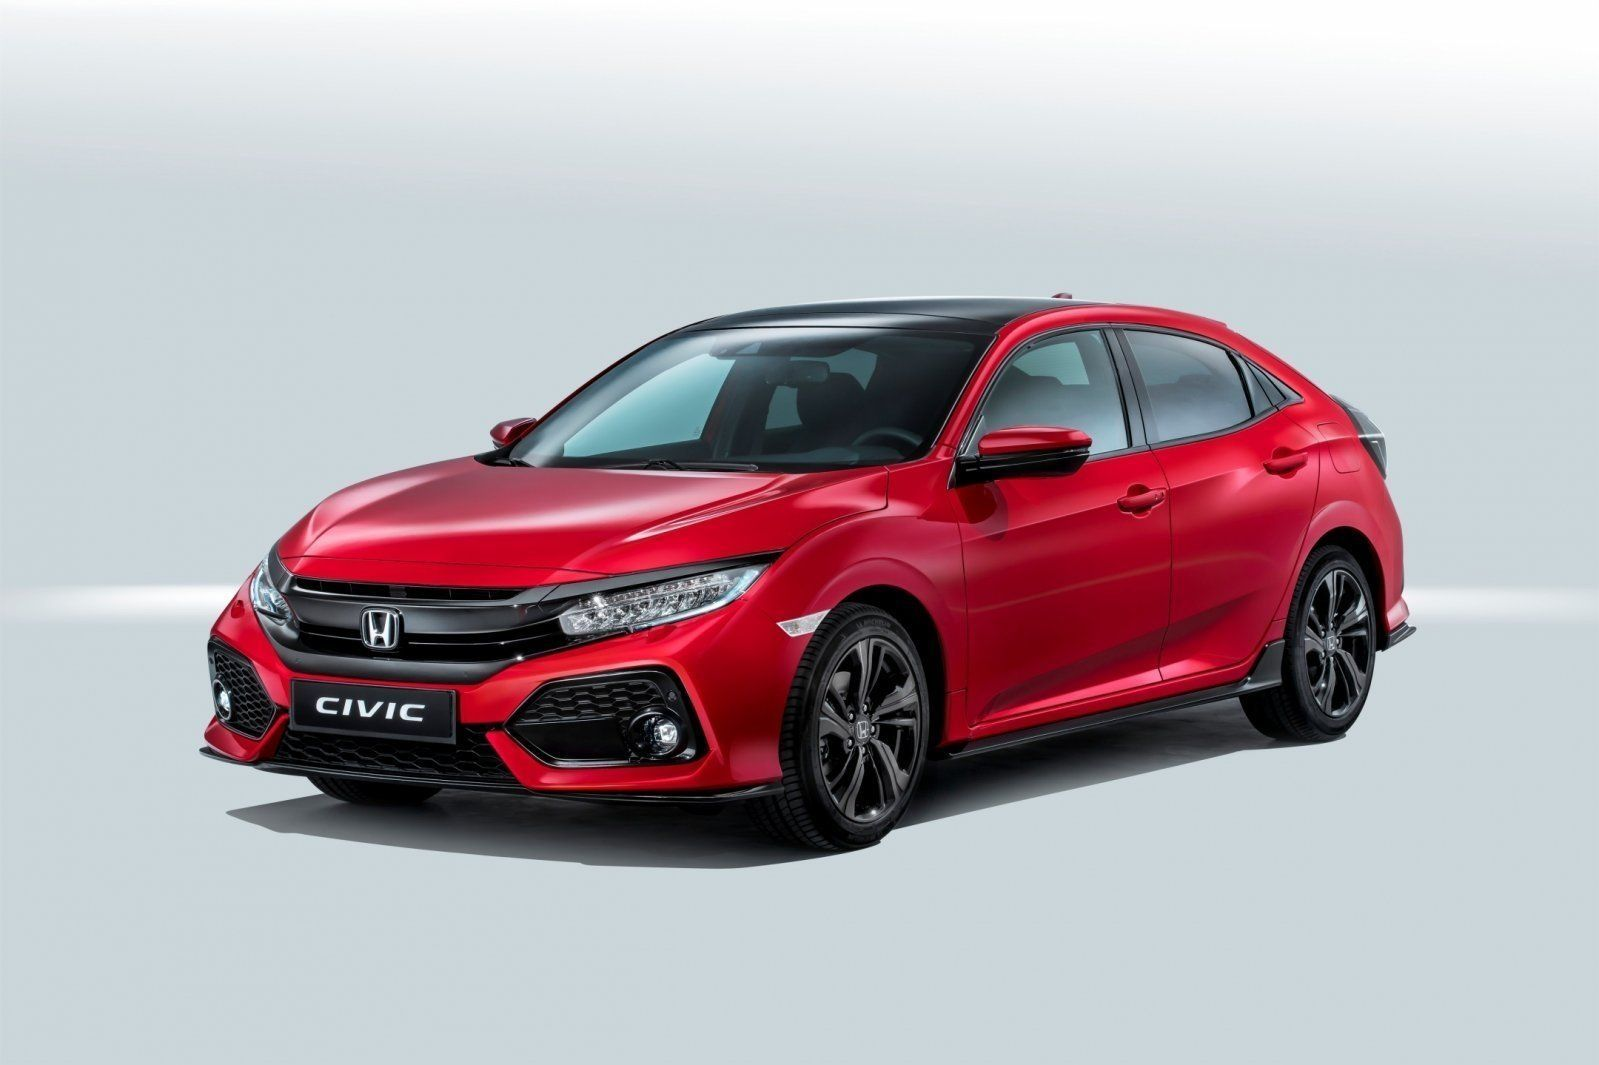 2020 Honda Civic Hybrid New Review Cars Review 2019 Honda Civic Hatchback Honda Civic Hybrid Civic Hatchback